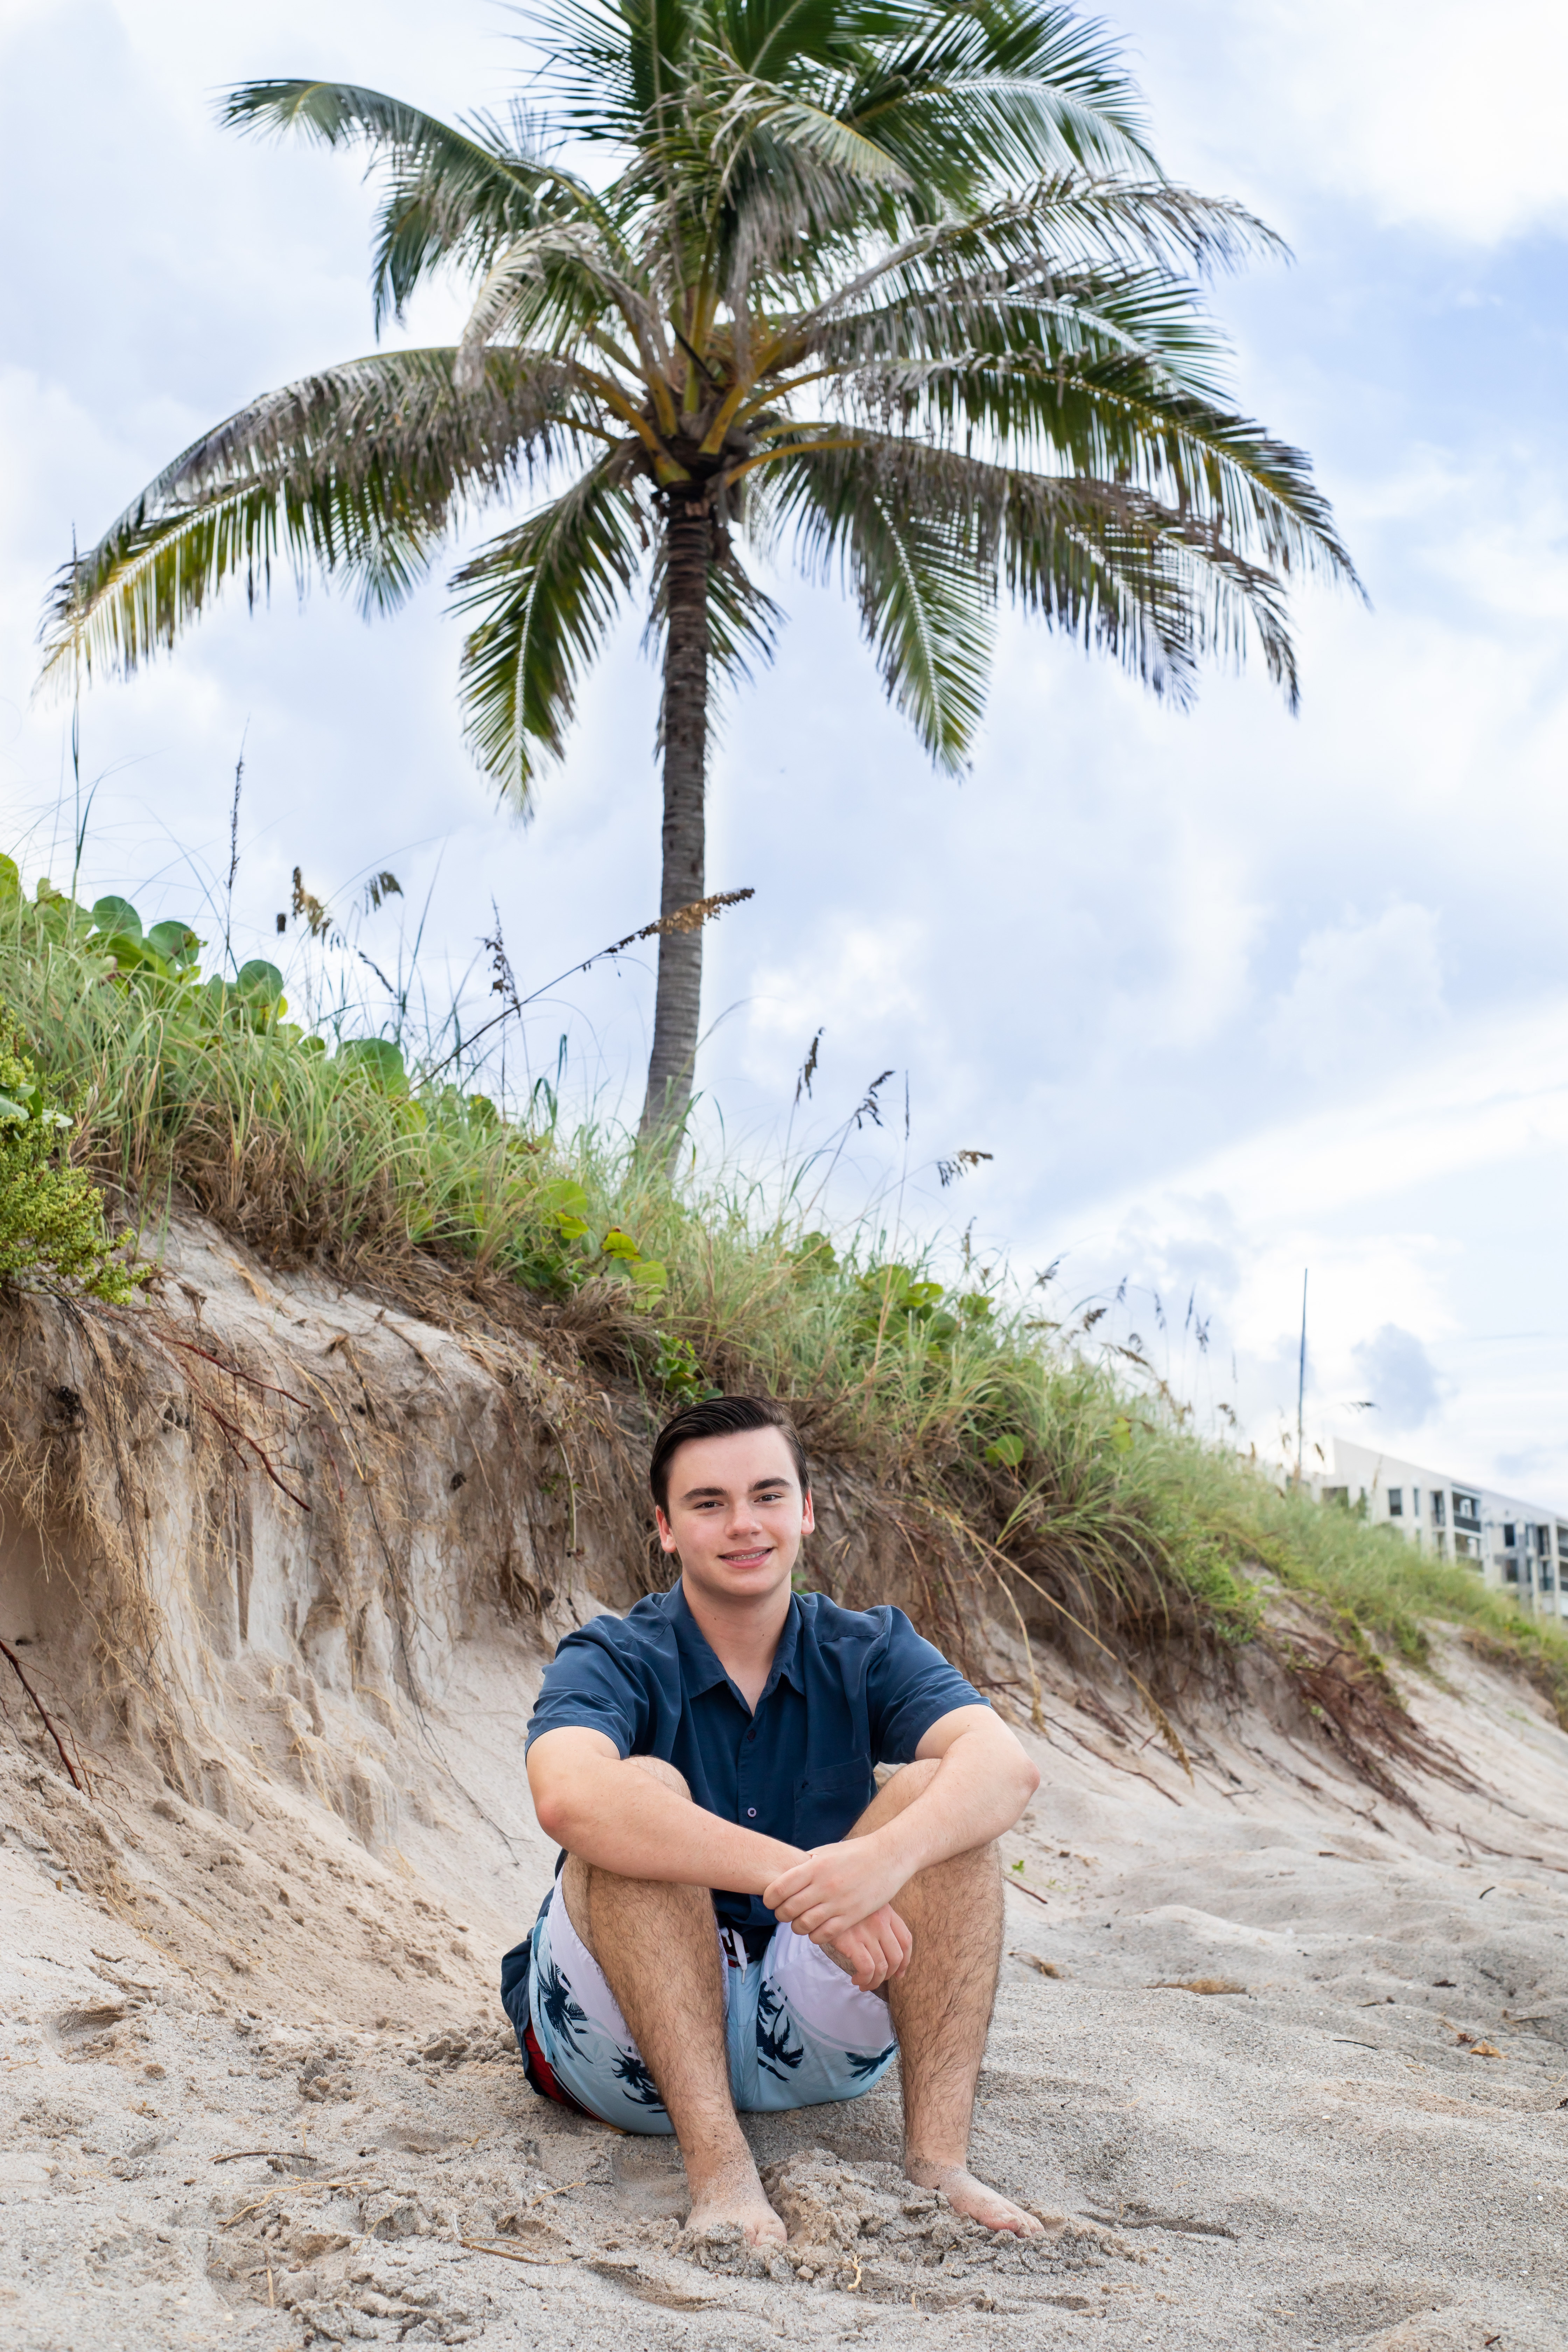 brandon-senior-photos-jupiter-coastal-cl